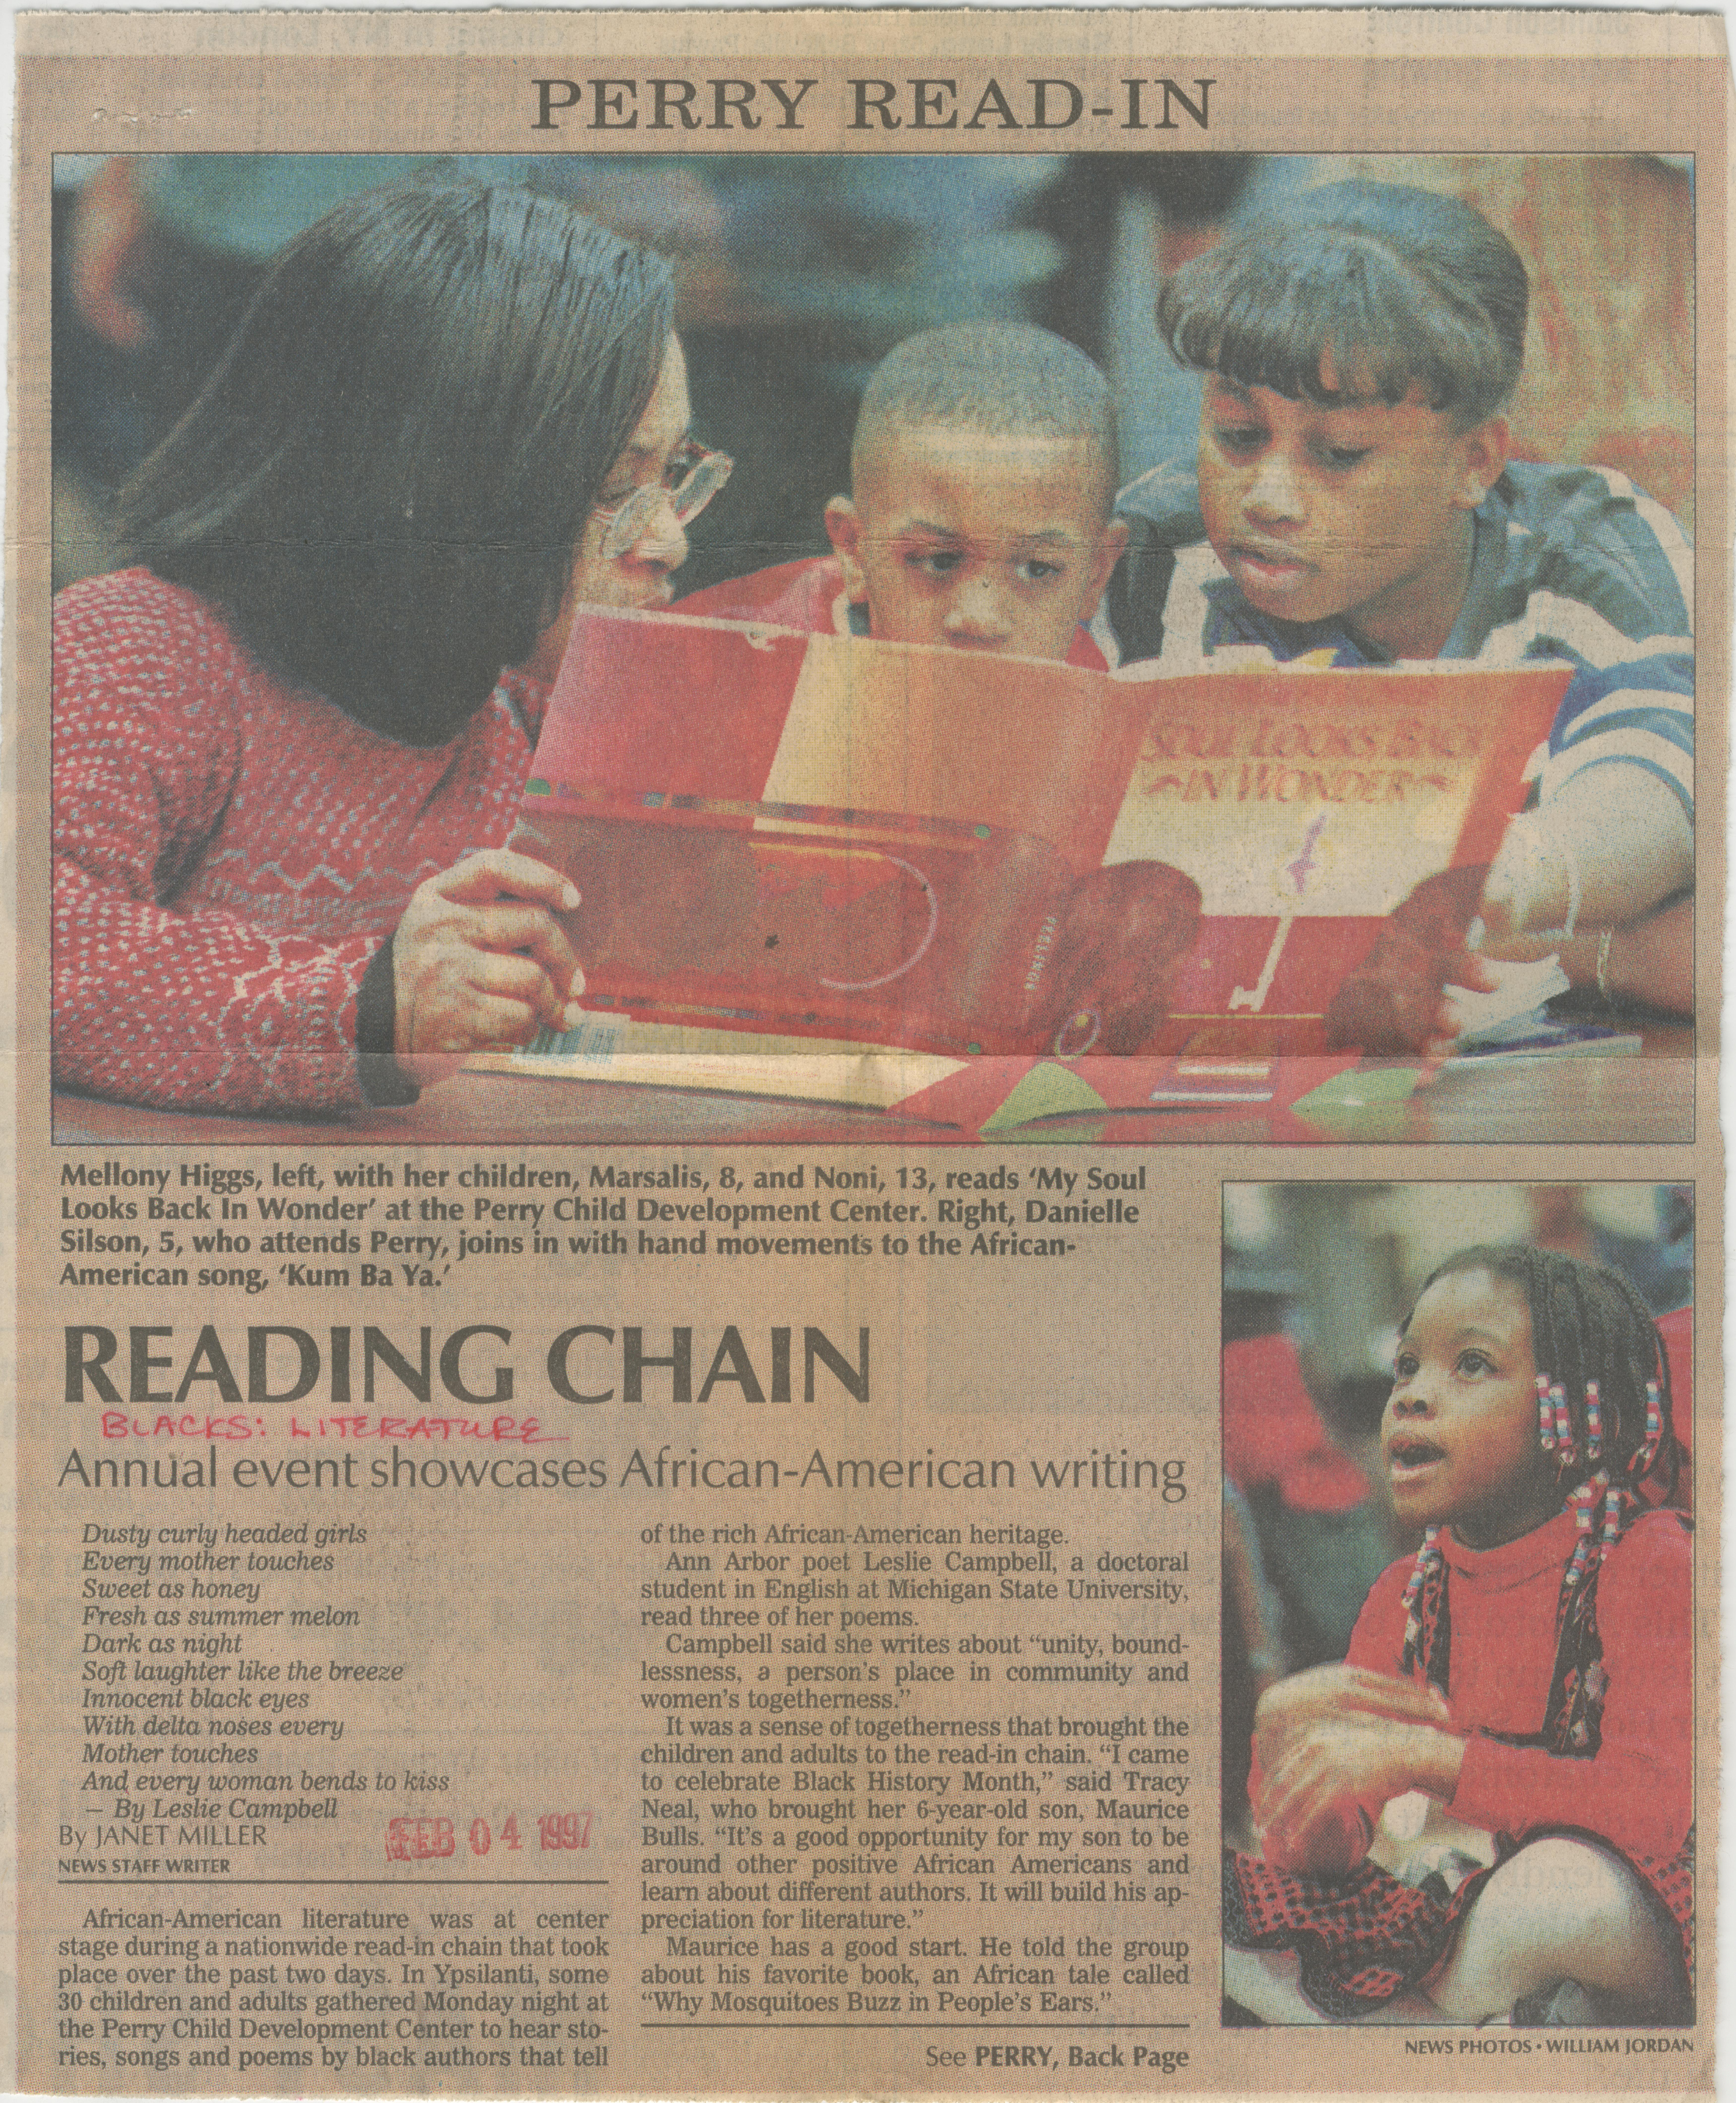 Reading Chain image